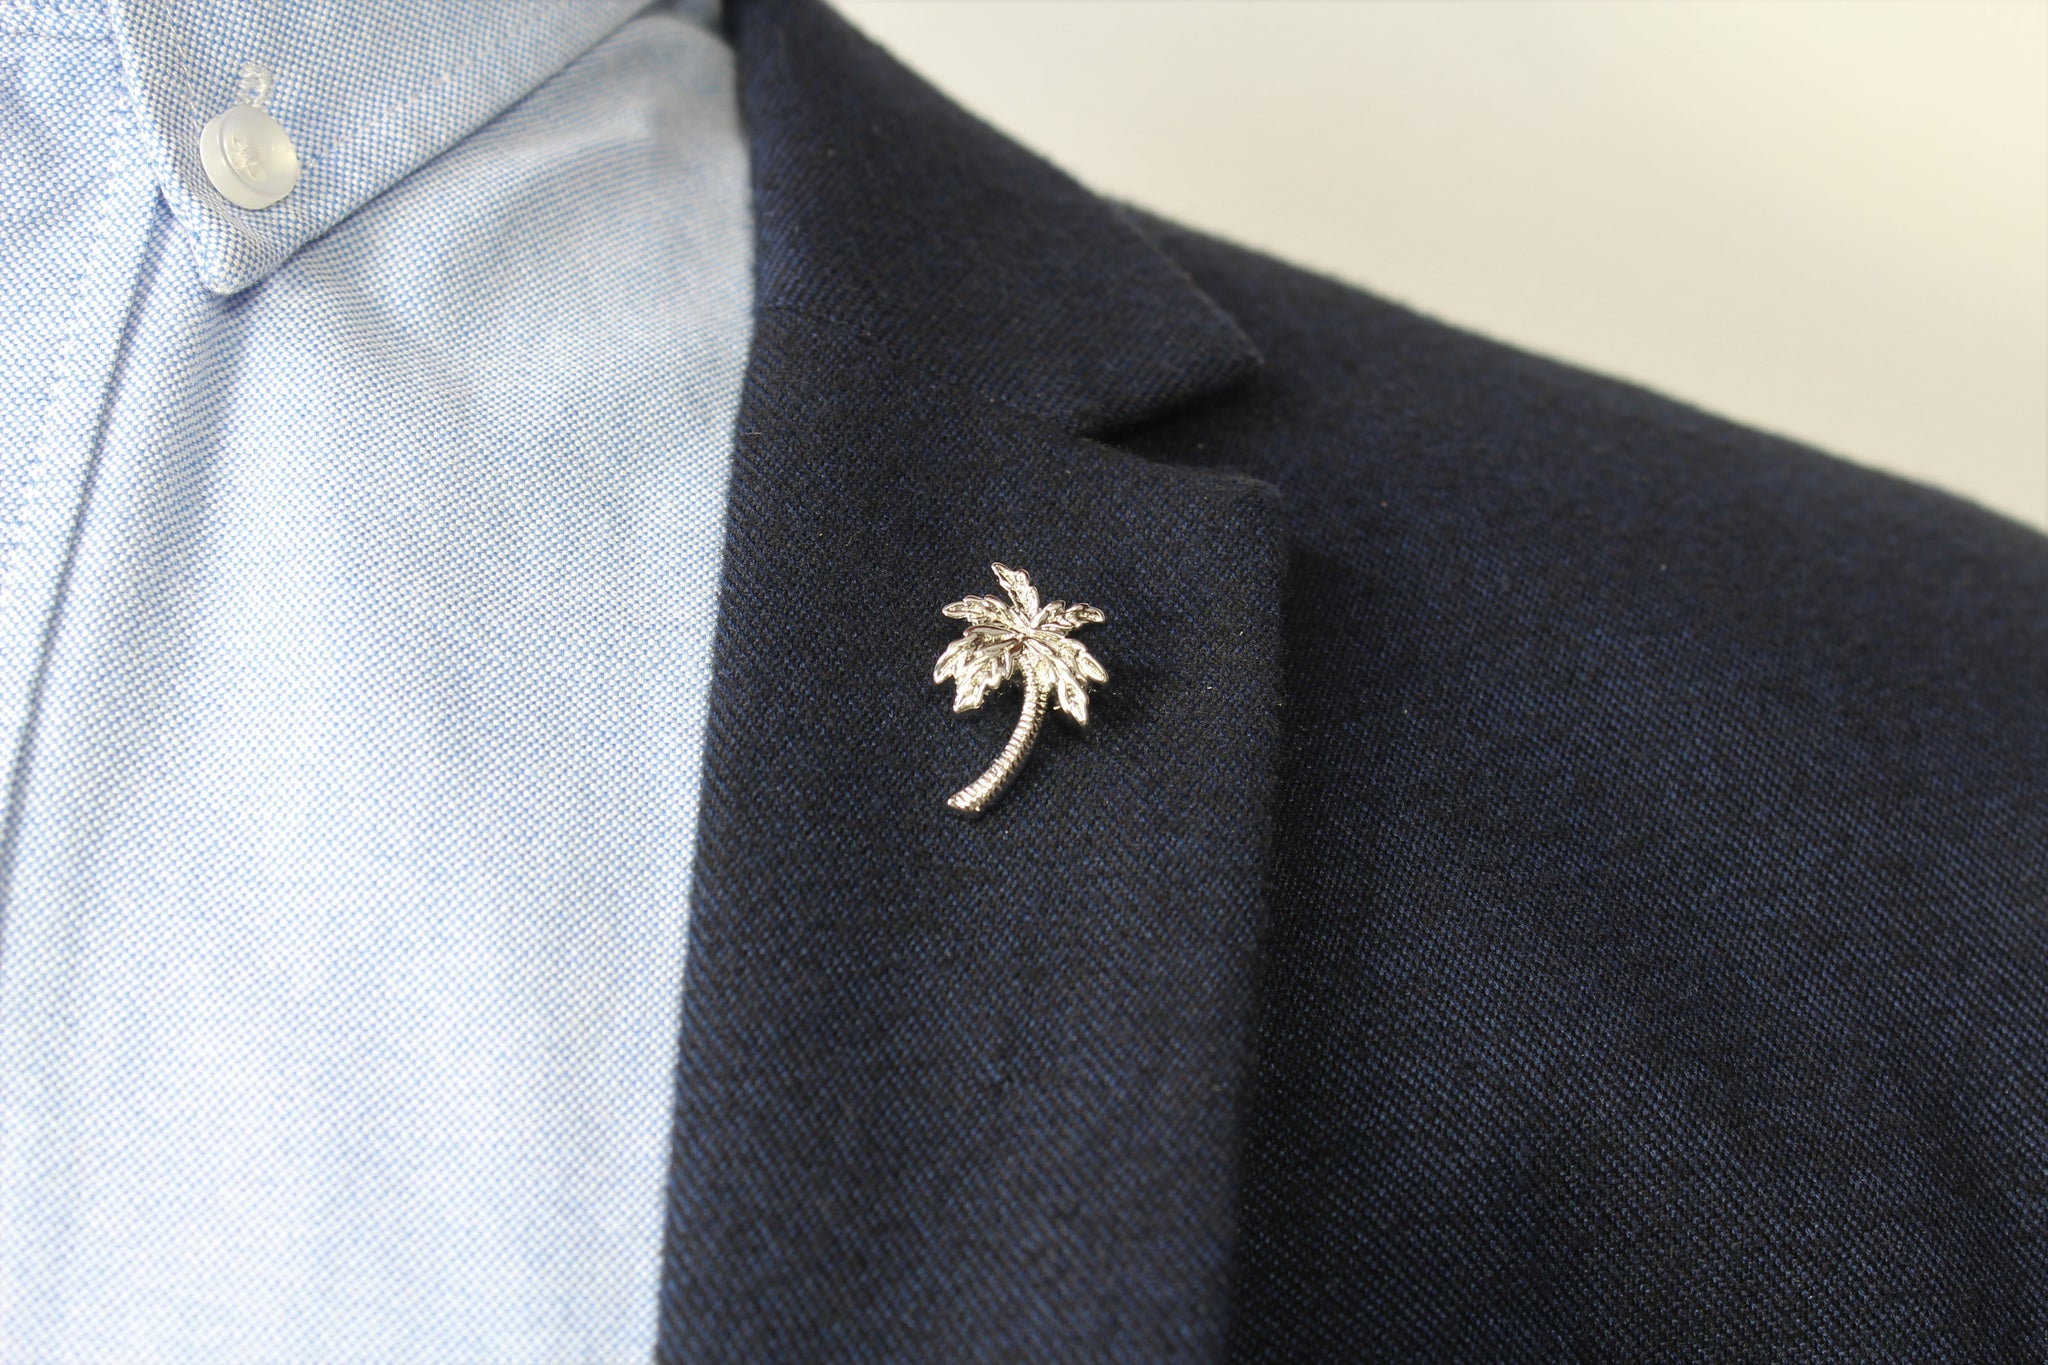 Palm Tree Lapel Pin - Stolen Riches / CA